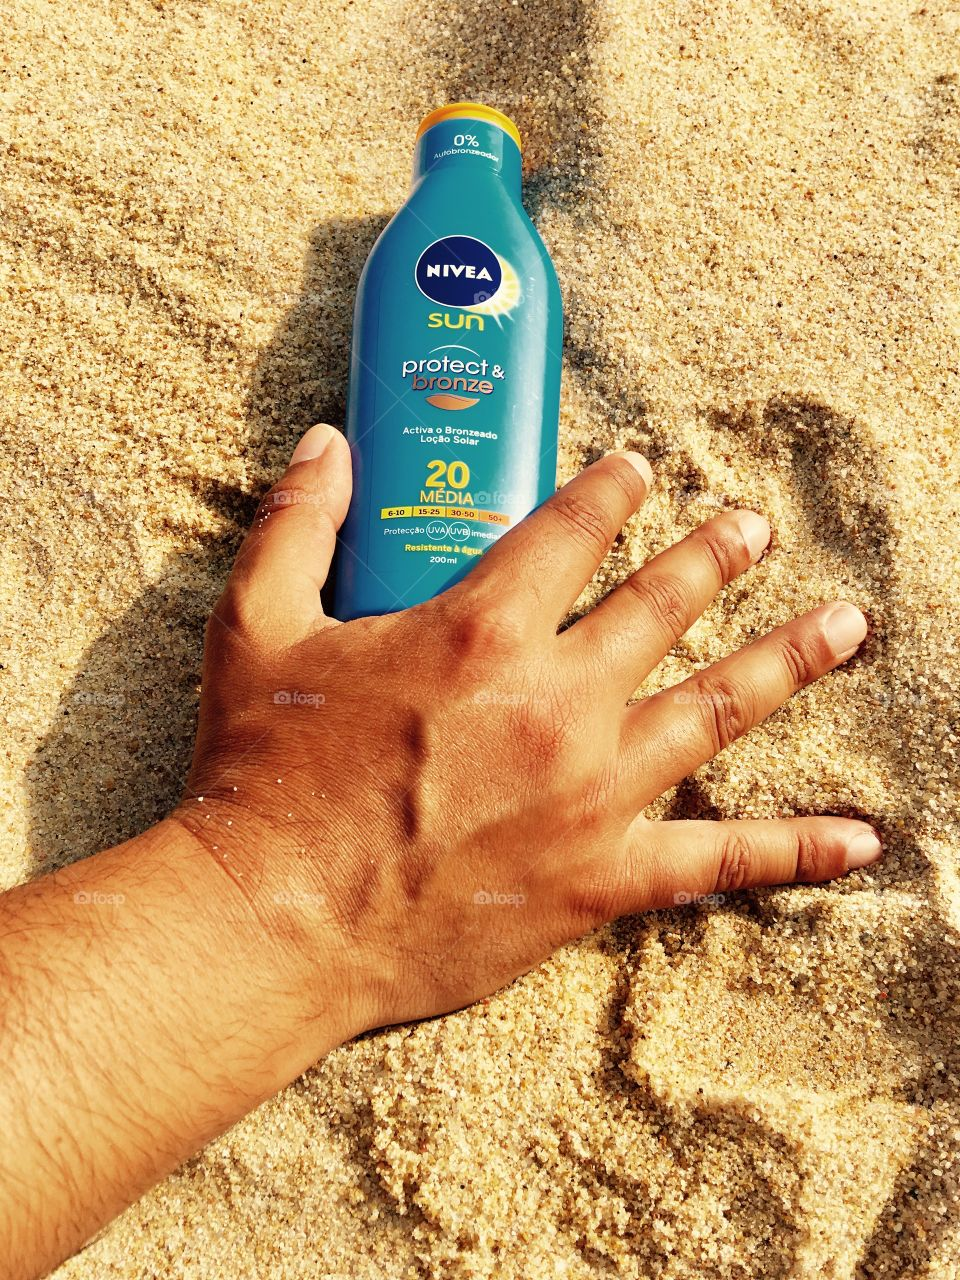 Hand holding bottle of Nivea Sunscreen Protector in the beach's sand